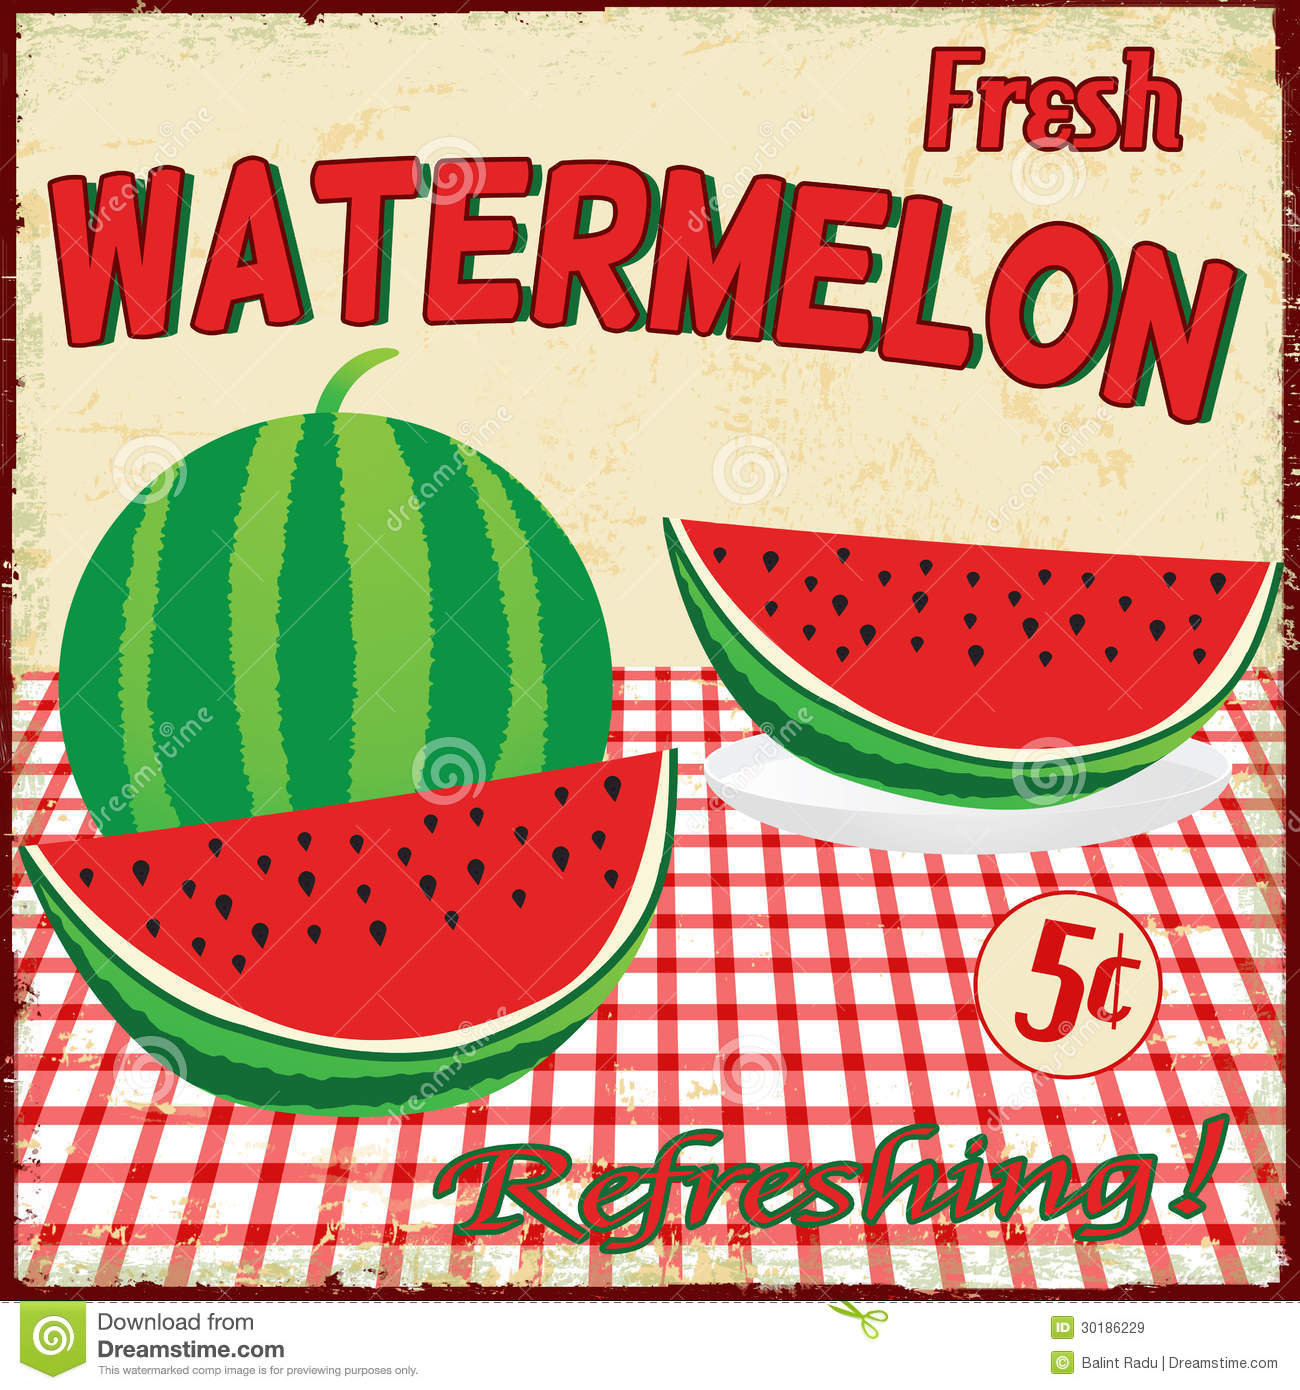 Retro Watermelon Poster Stock Vector - Image: 46009459